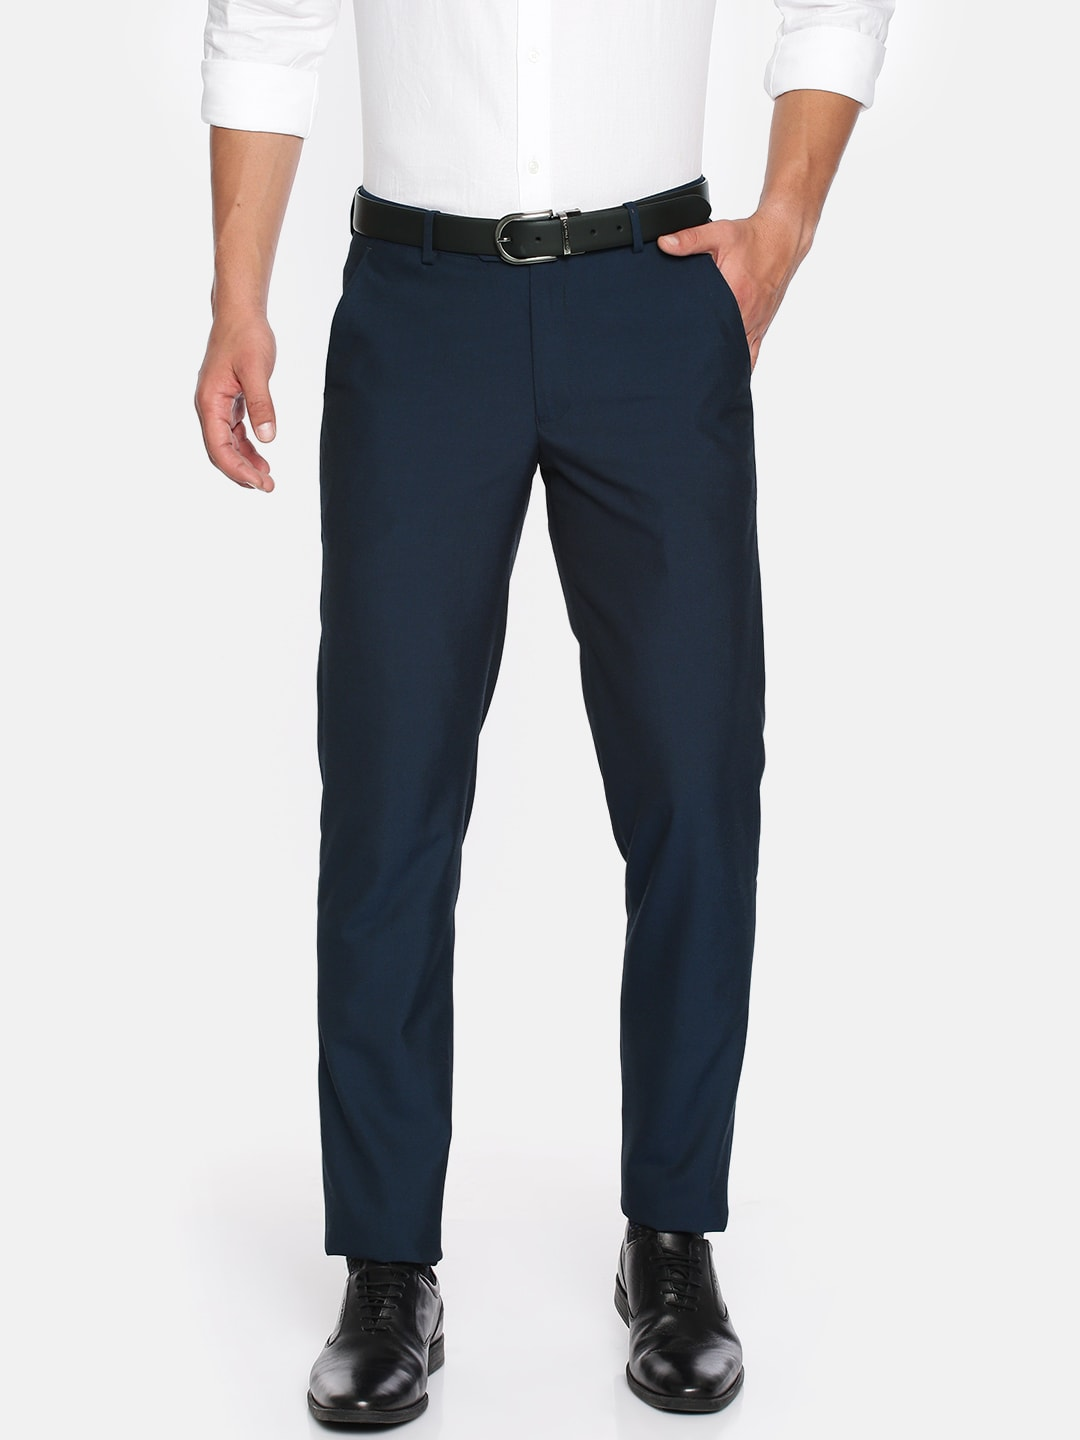 66b759d4afe0 Peter England - Buy Peter England Clothing Online in India